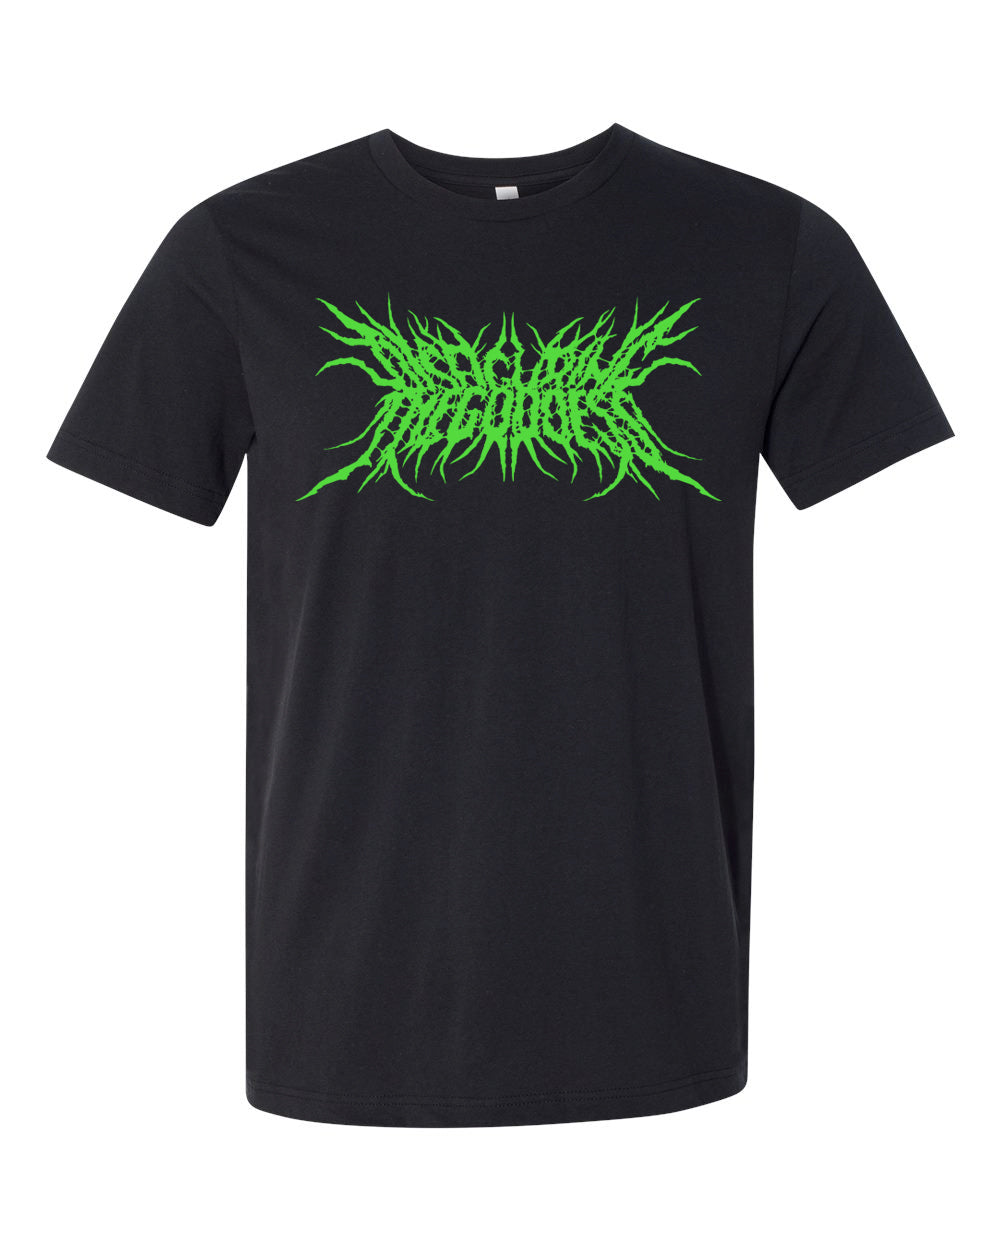 Disfiguring The Goddess Logo Shirt (Green Glow)